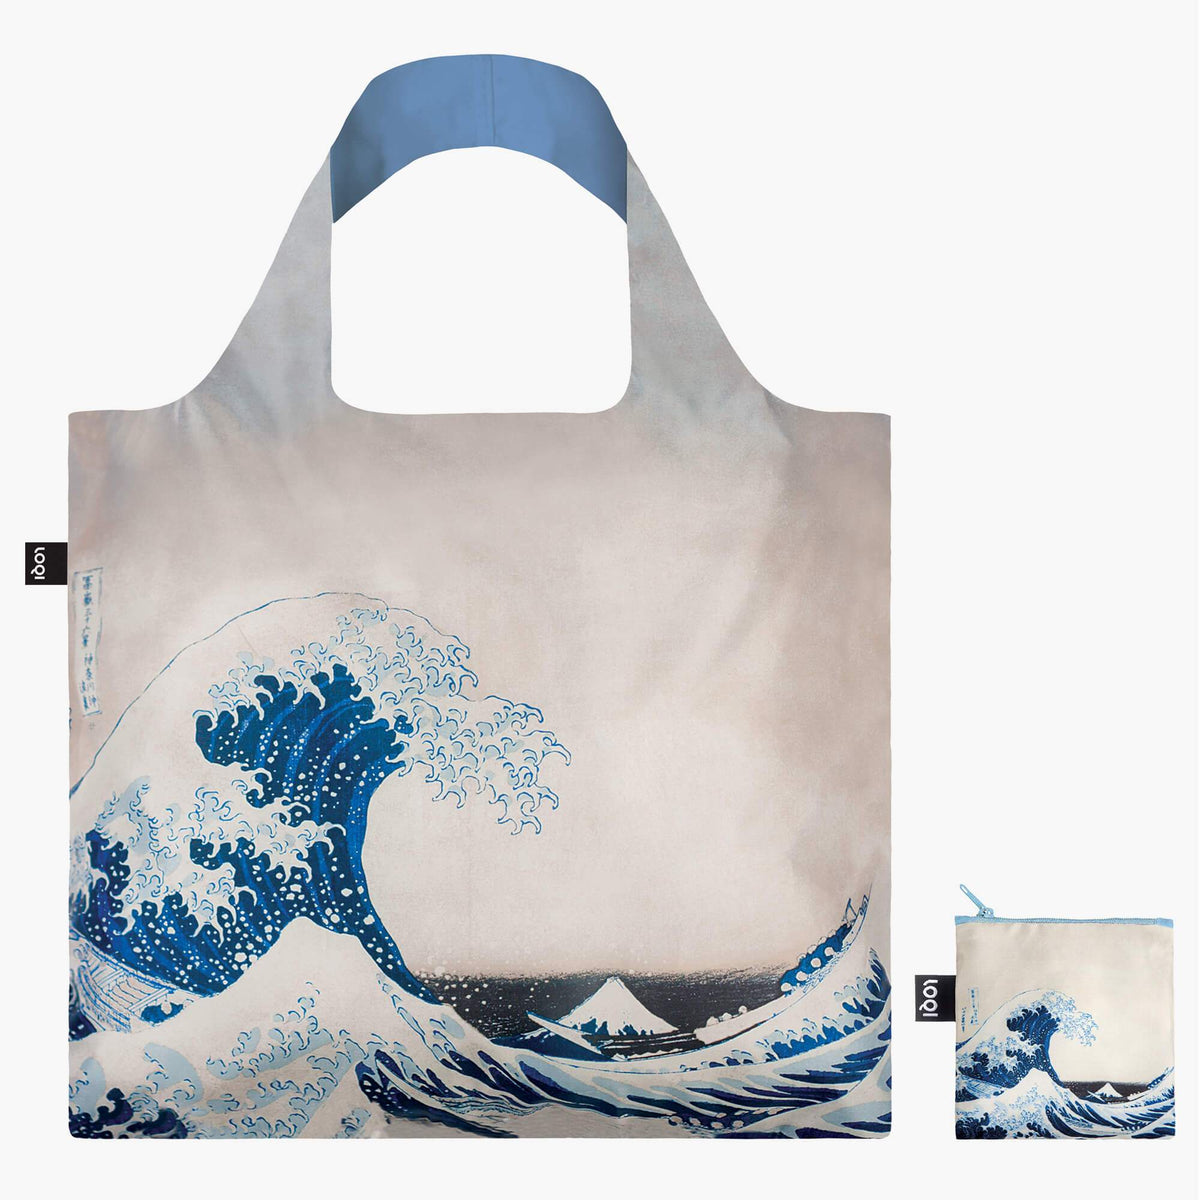 The Great Wave Recycled Bag, 1831 purse